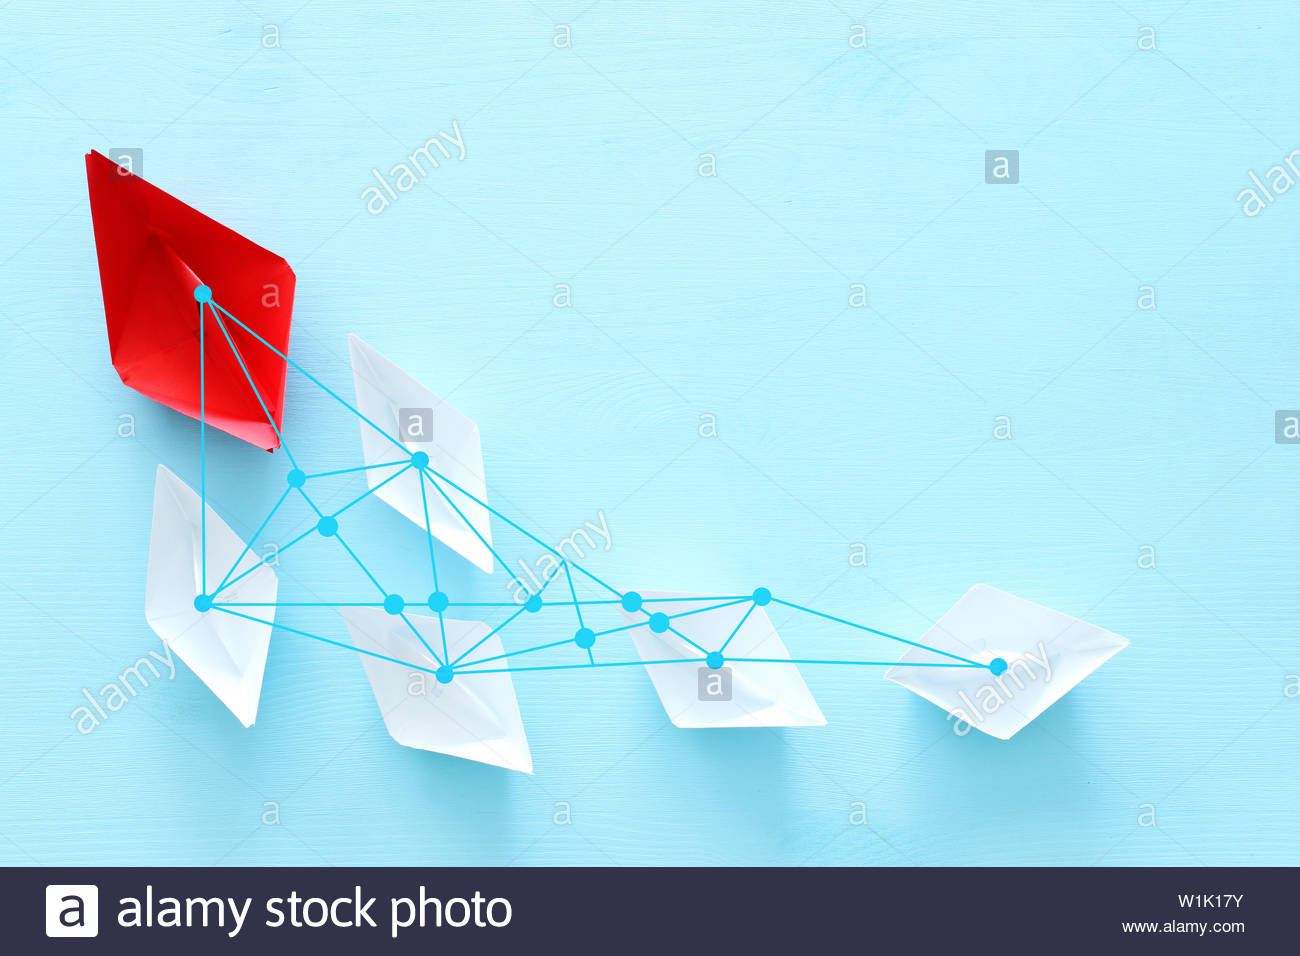 business Leadership concept image with paper boats on blue wooden 1300x956